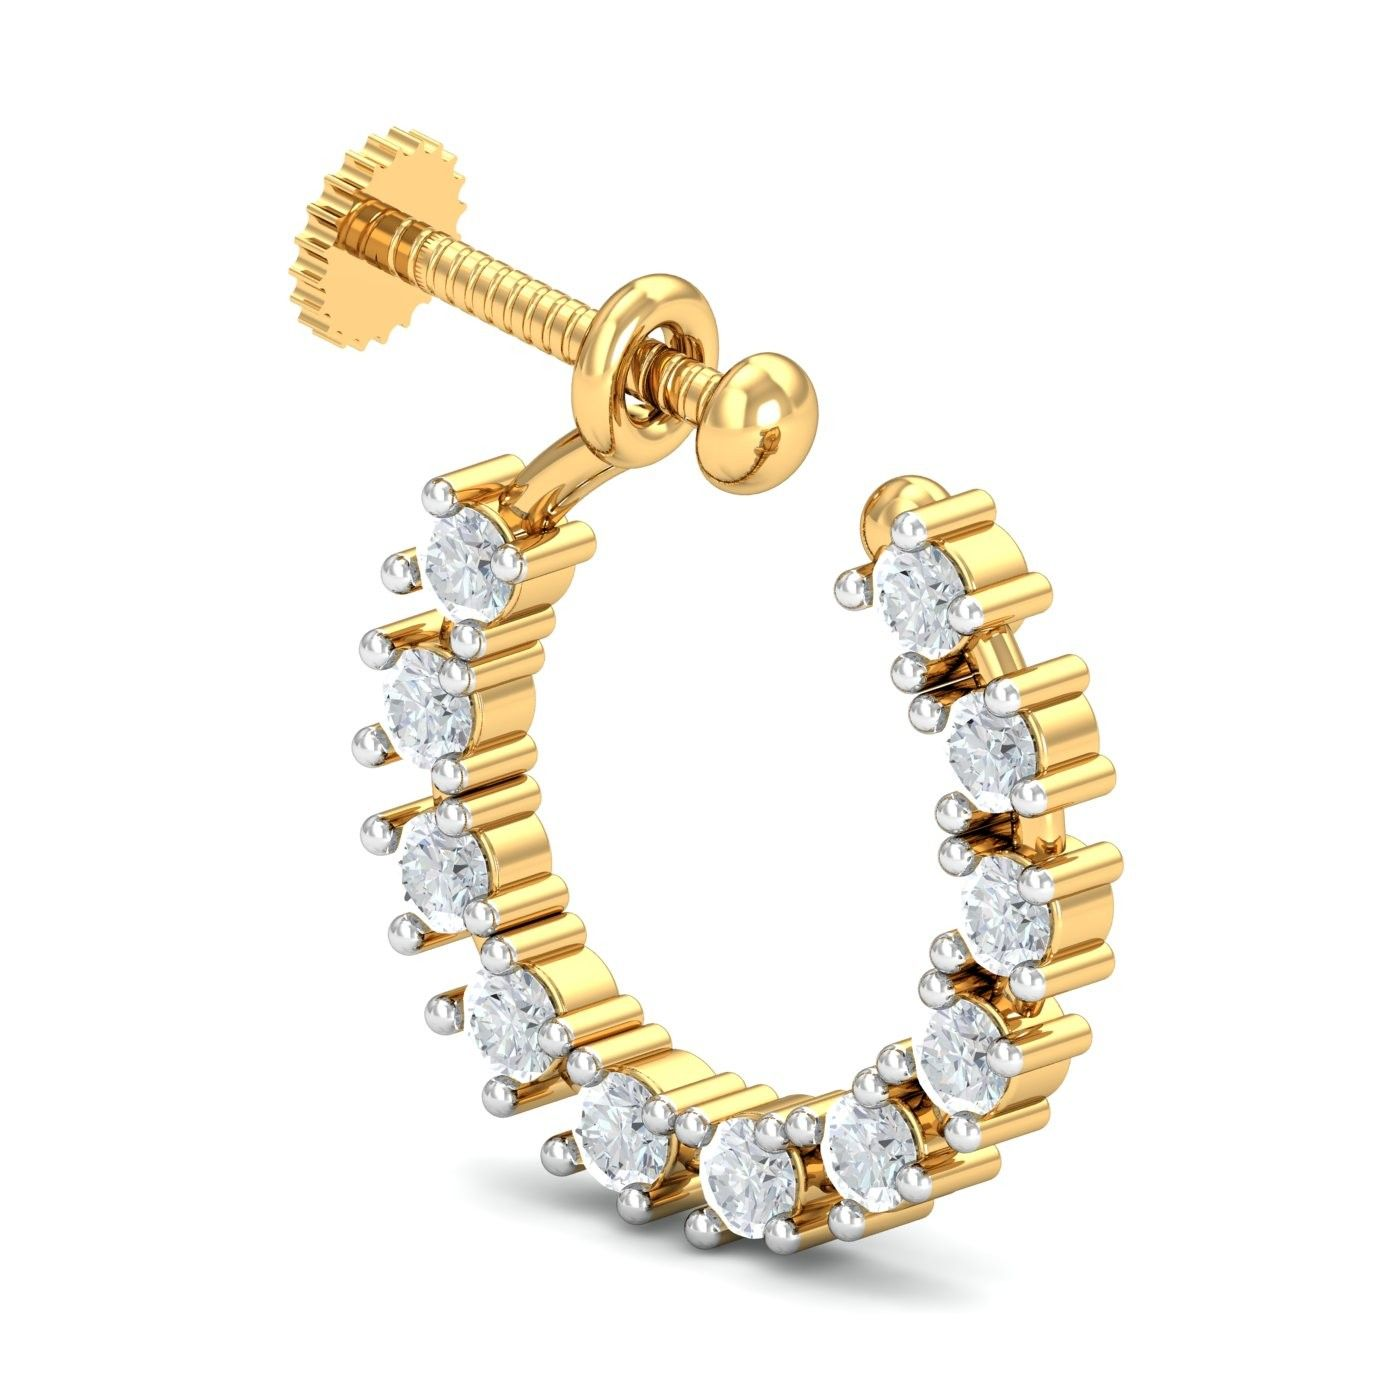 About nath nose ring mukku pudaka on pinterest jewellery gold nose - A Charming Nose Ring Nath Design With 11 Diamonds Forming A Cirlce On A Round Gold Frame It S For The Ones Who Are Yet To Get Their Nose Pierced And